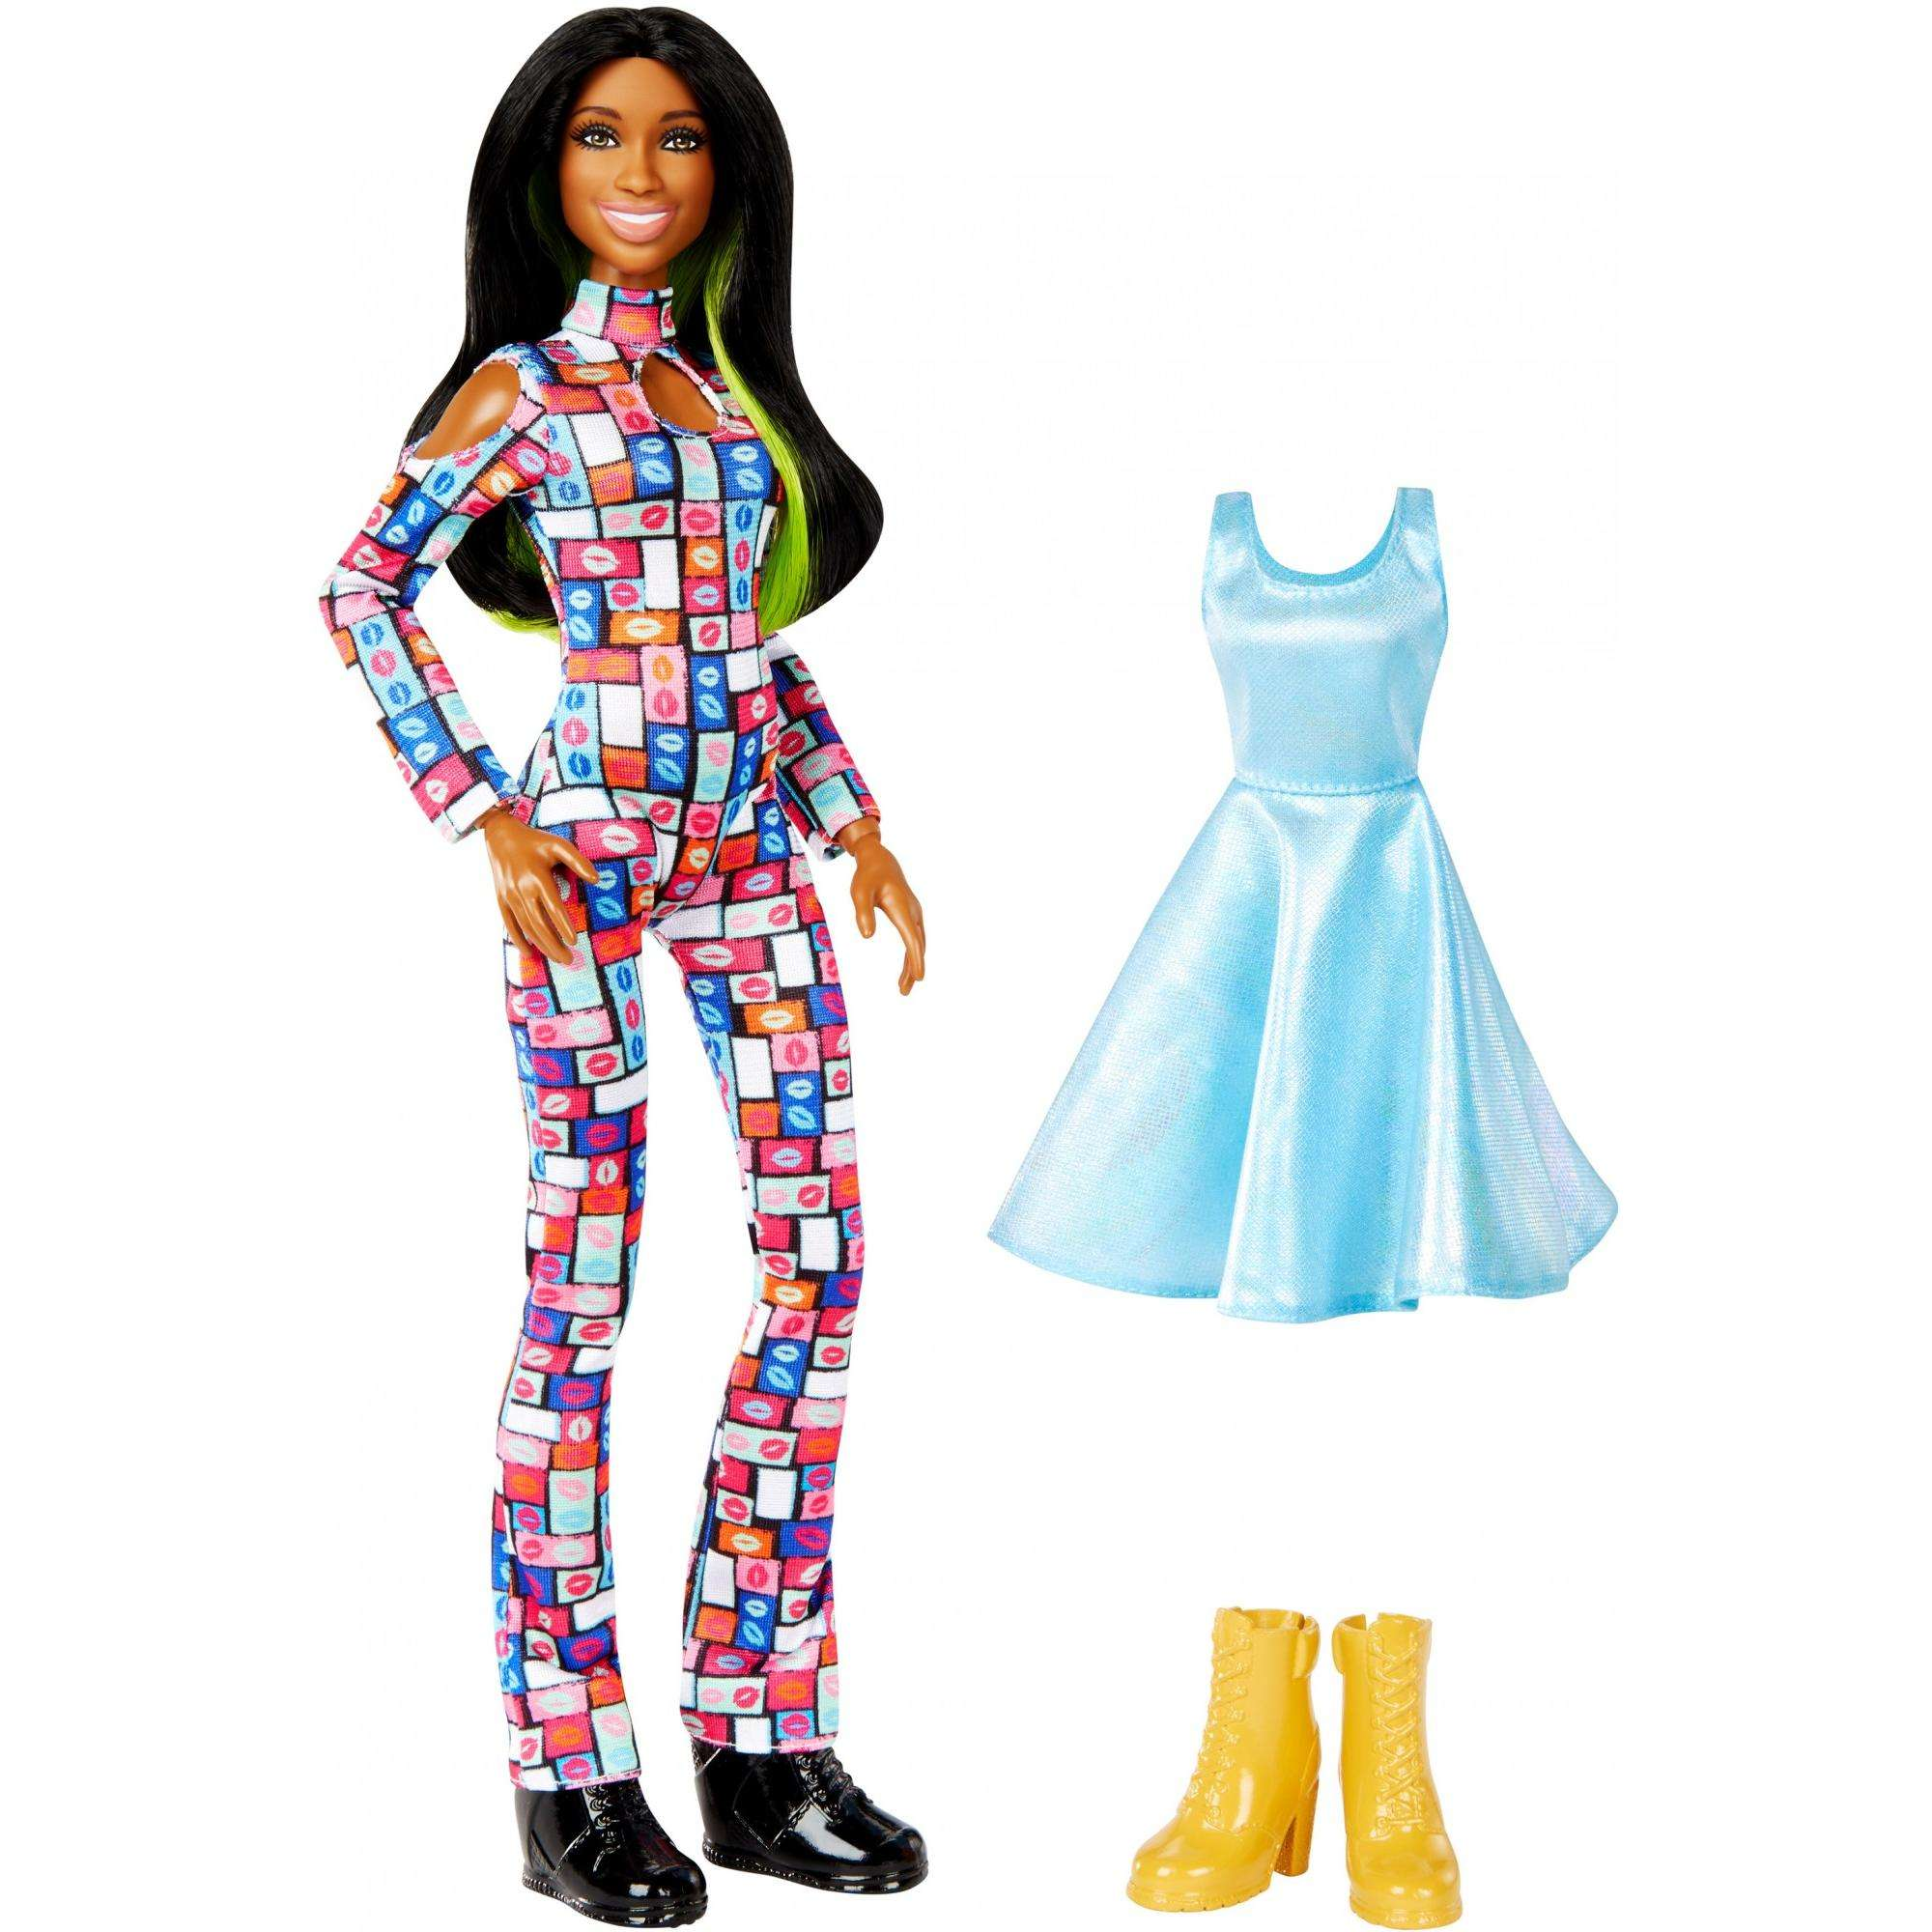 WWE Superstars Naomi 12-inch Posable Fashion Doll Plus 1 Outfit